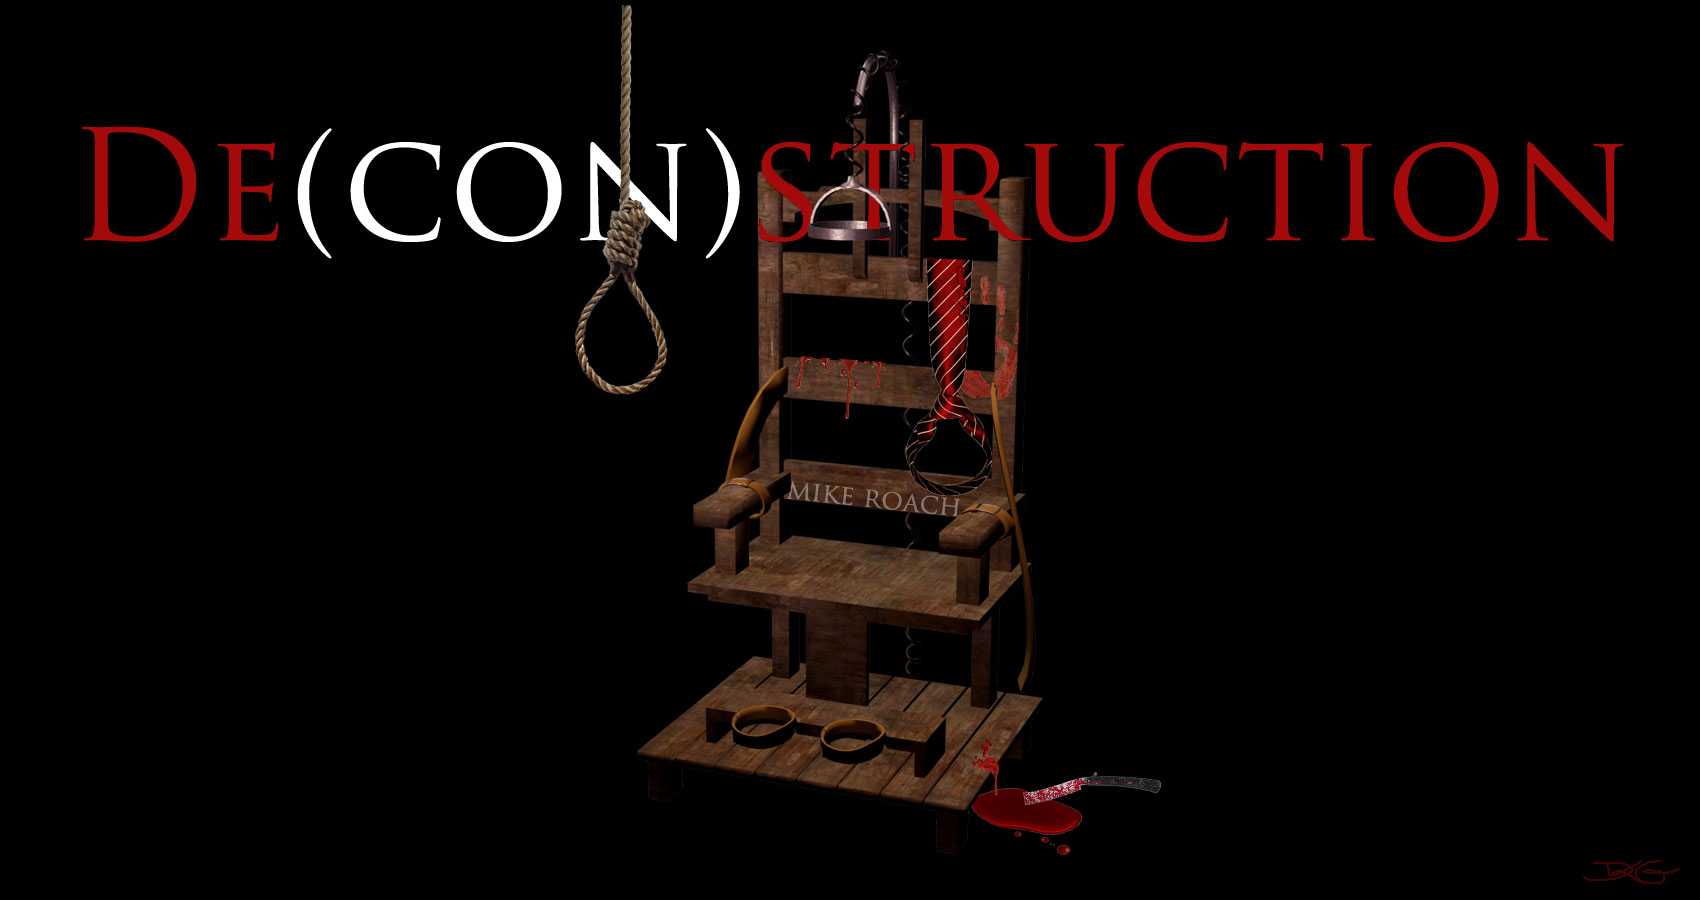 De(con)struction at Spillwords.com